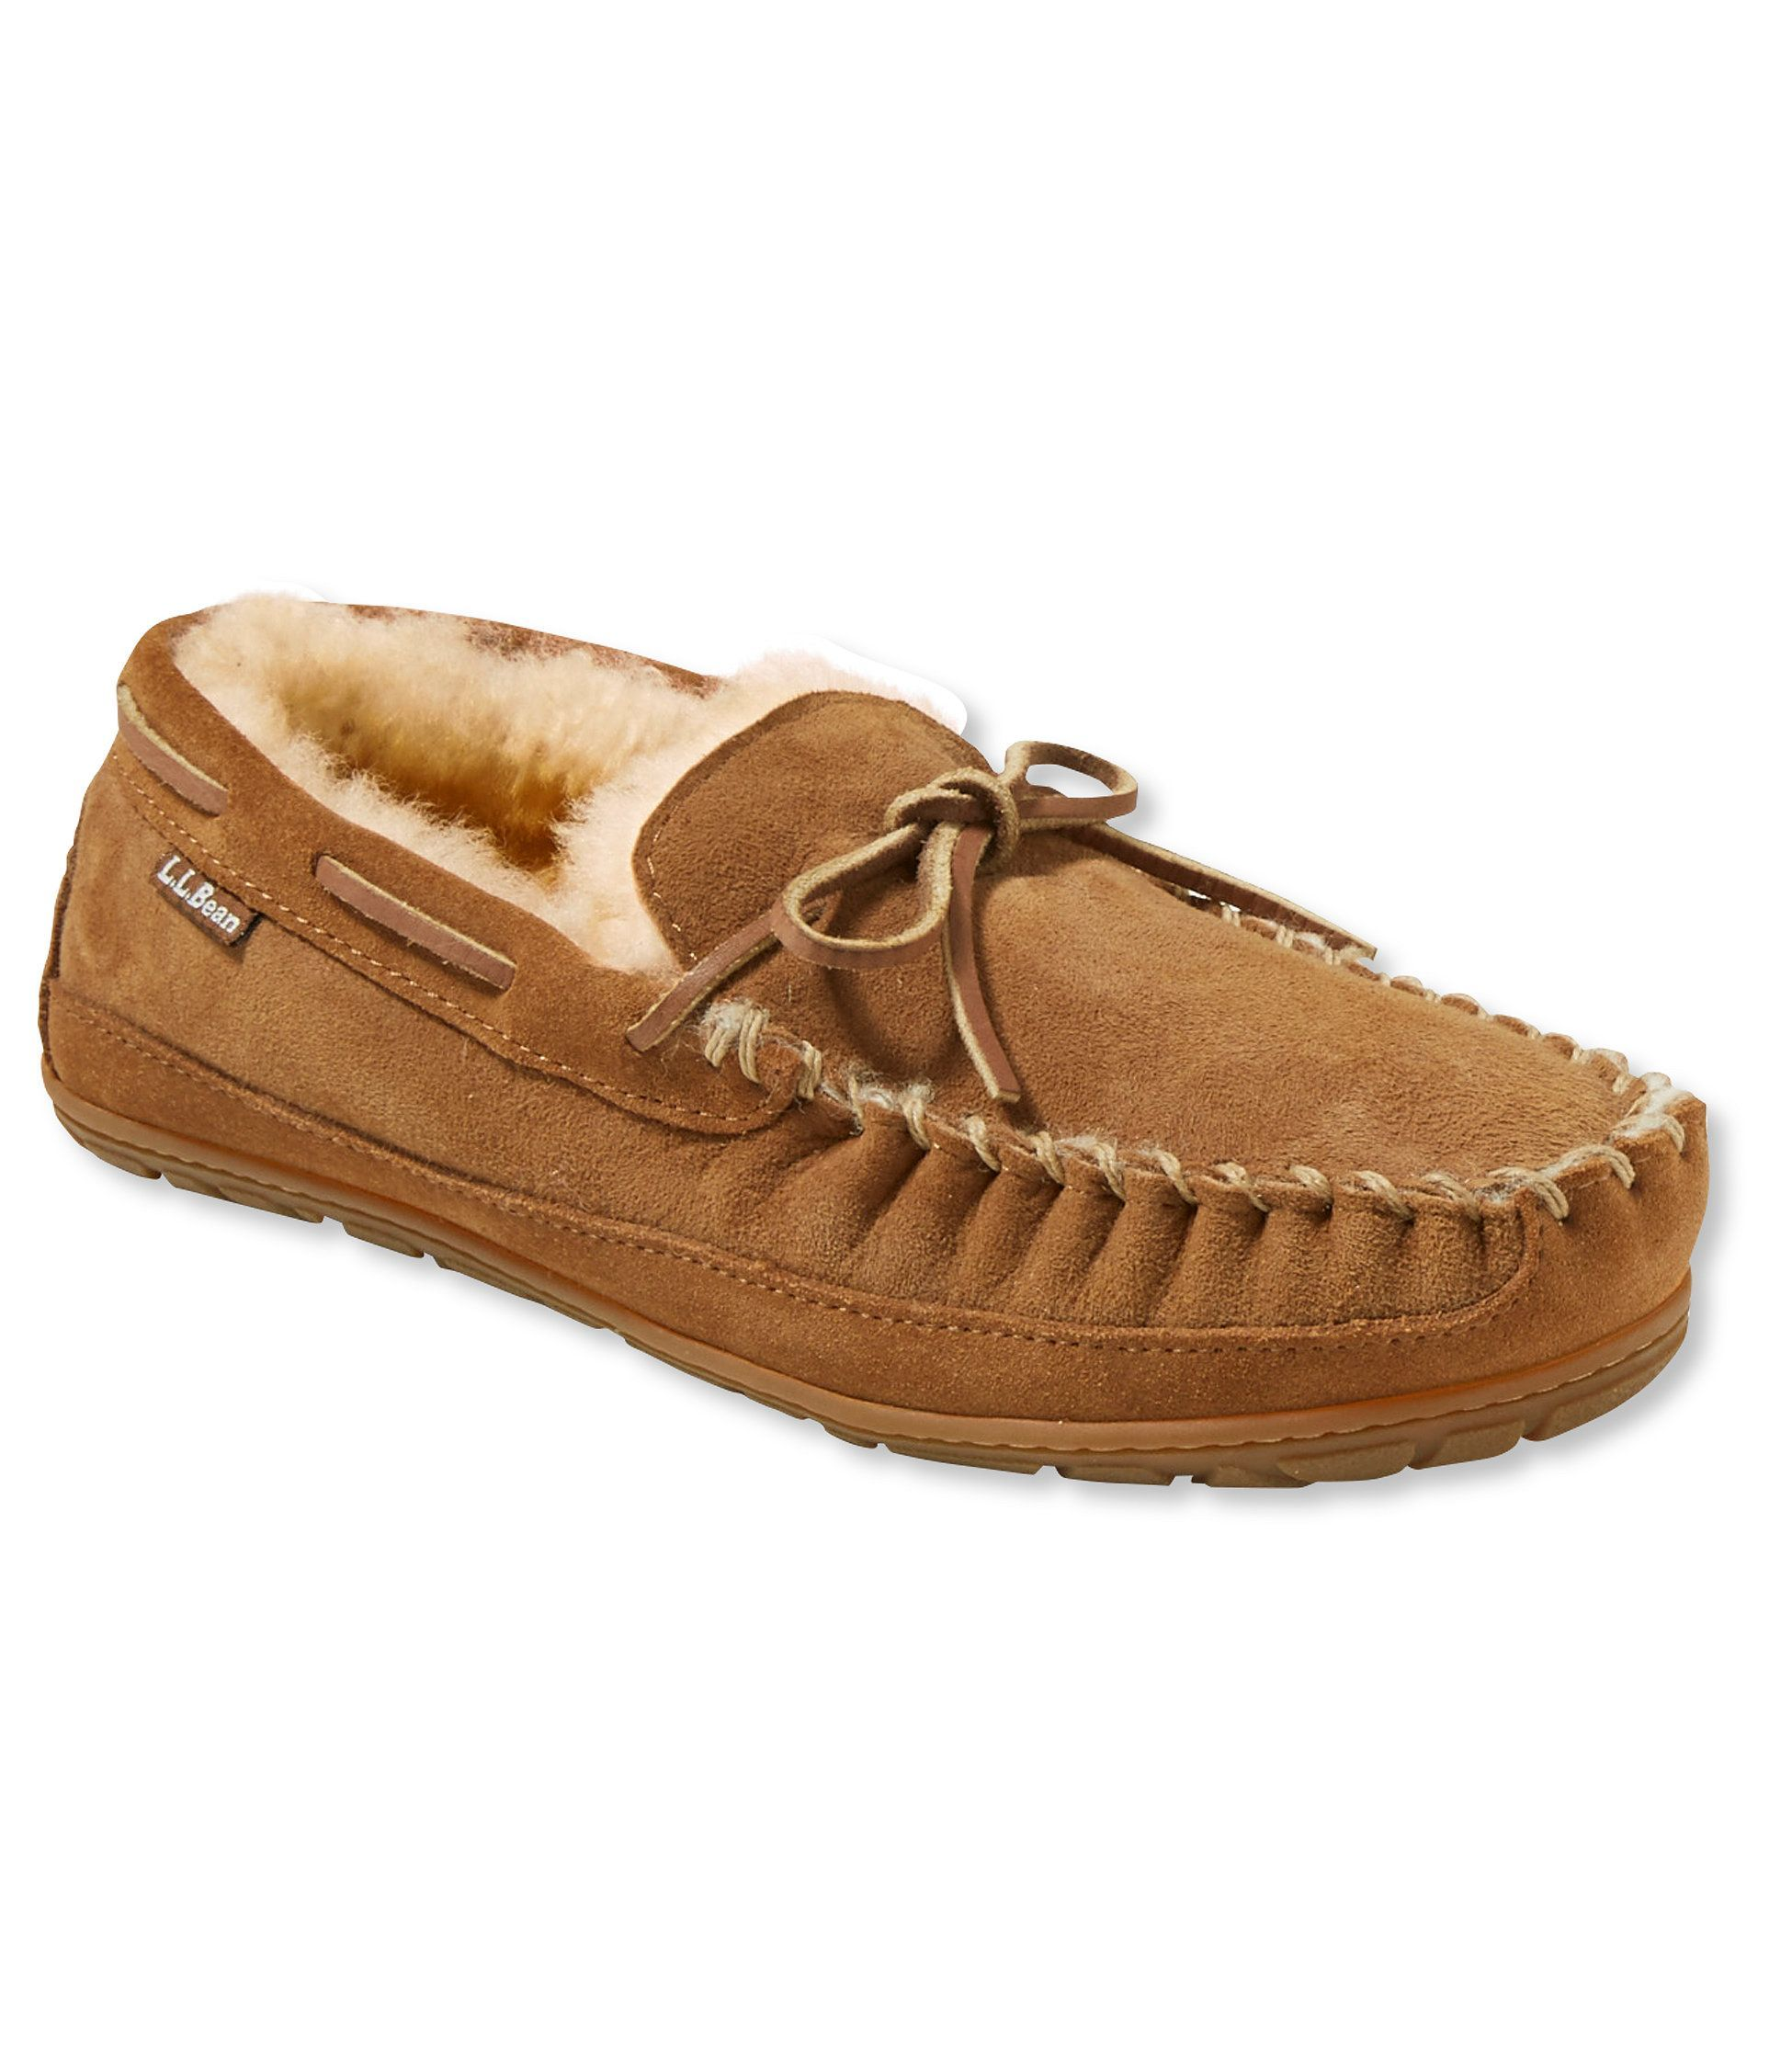 83c8d6ae6ef53 Men's Wicked Good Moccasins | Products | Best slippers, Moccasins ...